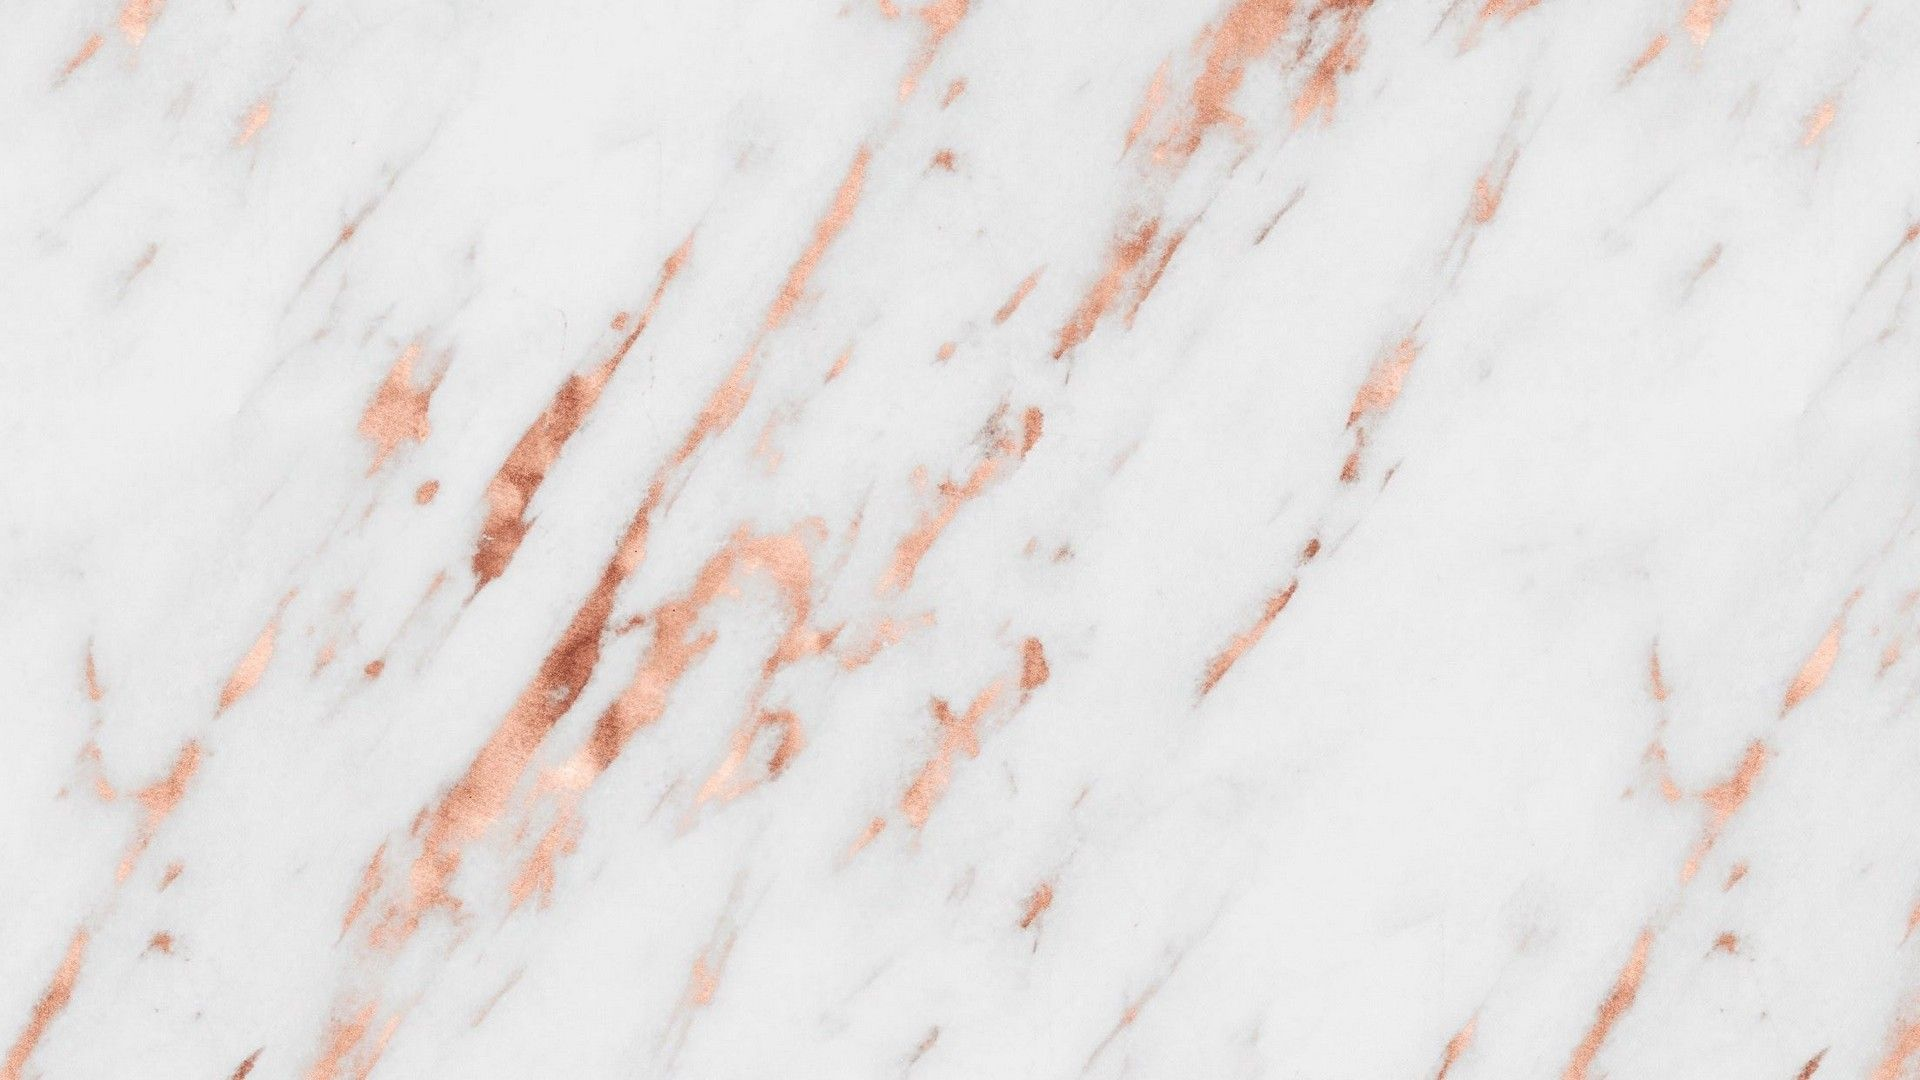 Rose Gold Marble Wallpaper Hd Wallpaper Wallpaper Rose Gold